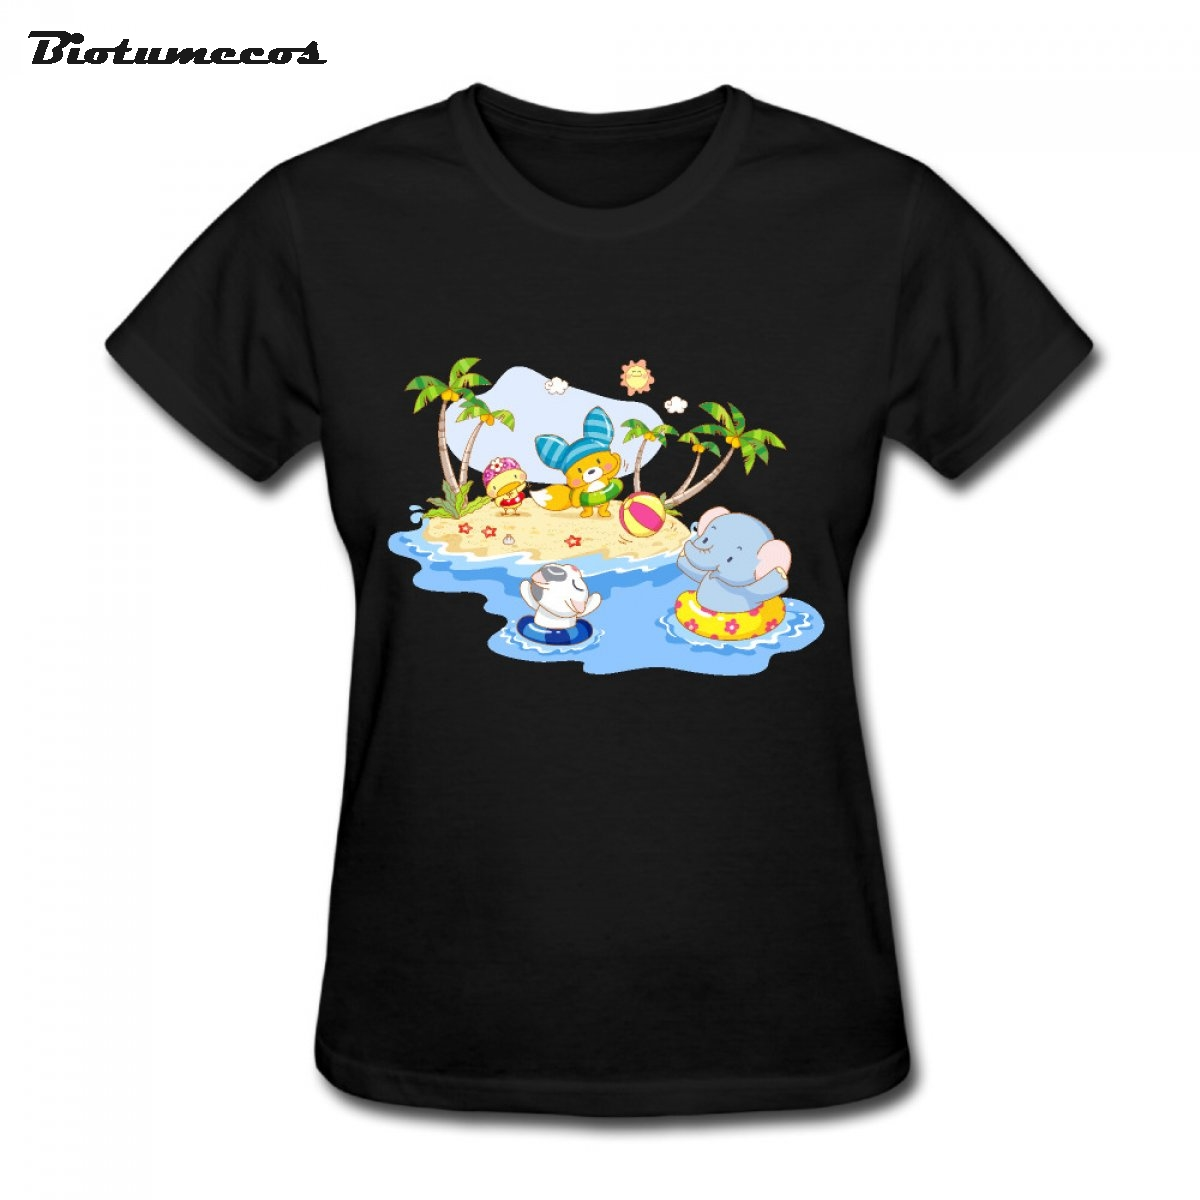 Biotumecos Store Hot Sale Animal Swiming  Women T Shirt Short Sleeve Comfortable Cotton O-neck Casual Girl Shirt WTY033